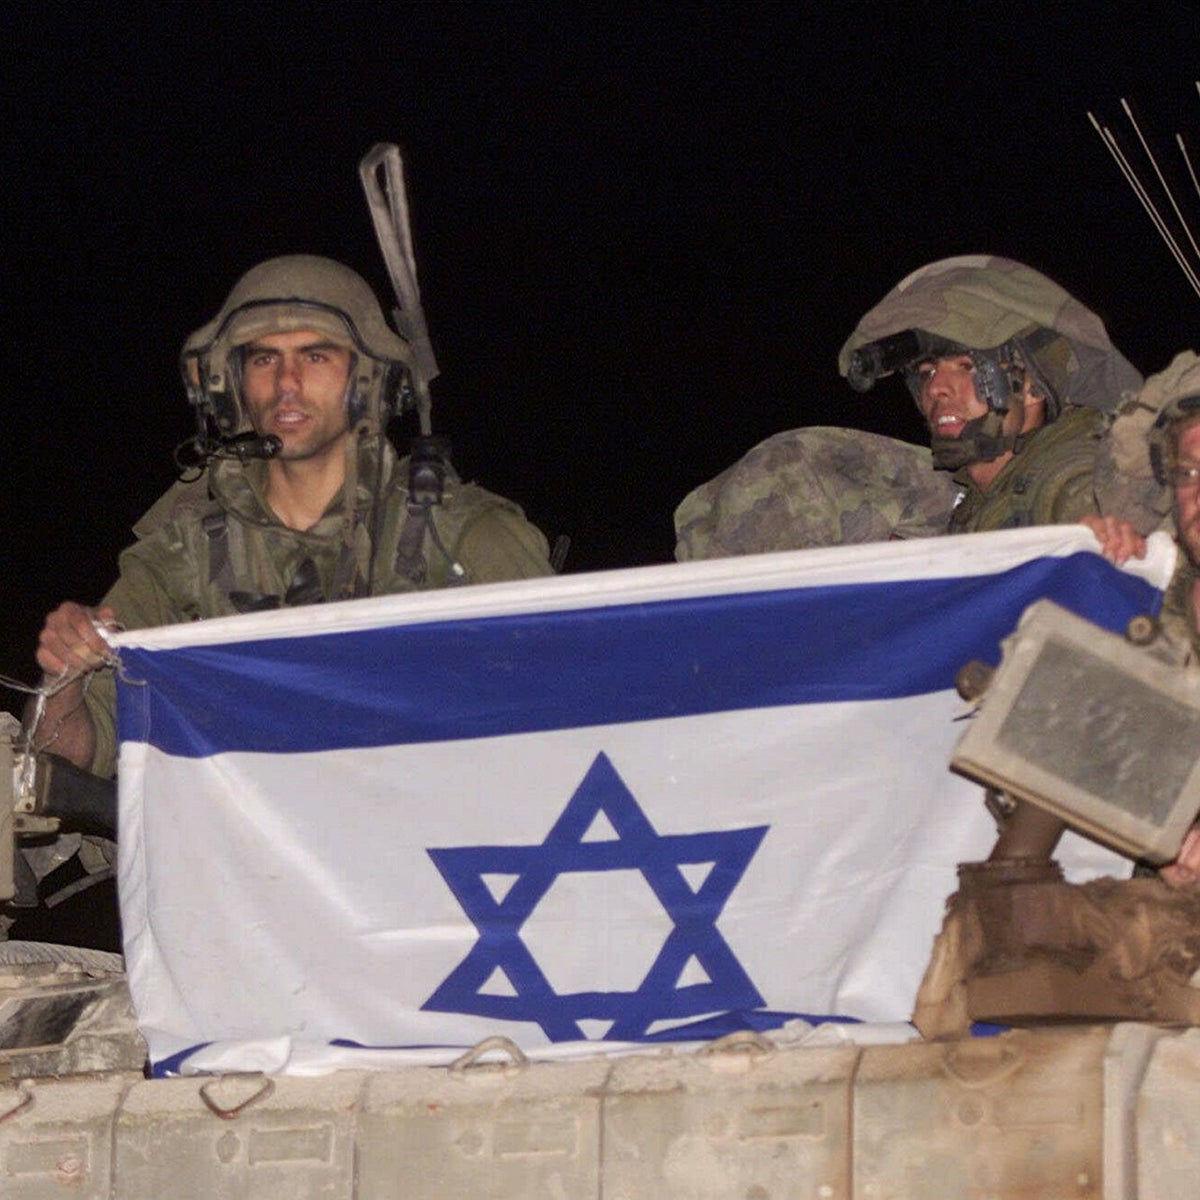 Israeli soldiers ride atop their armored vehicle holding an Israeli flag as they withdraw from south Lebanon into Israel, at the Israeli-Lebanese border near Metula, May 24, 2000.